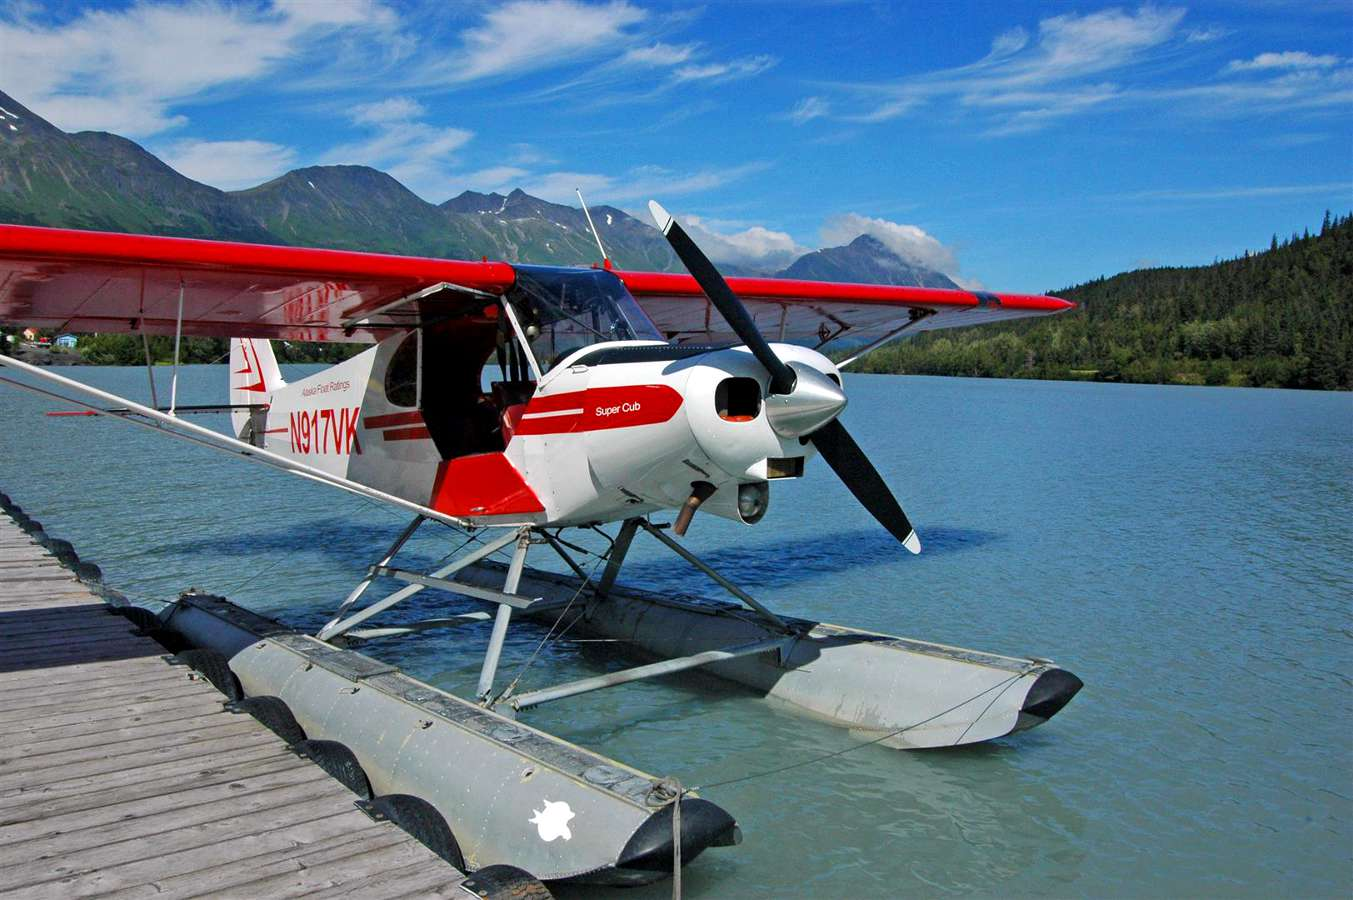 Seaplane tied up to a dock on an Alaskan lake.